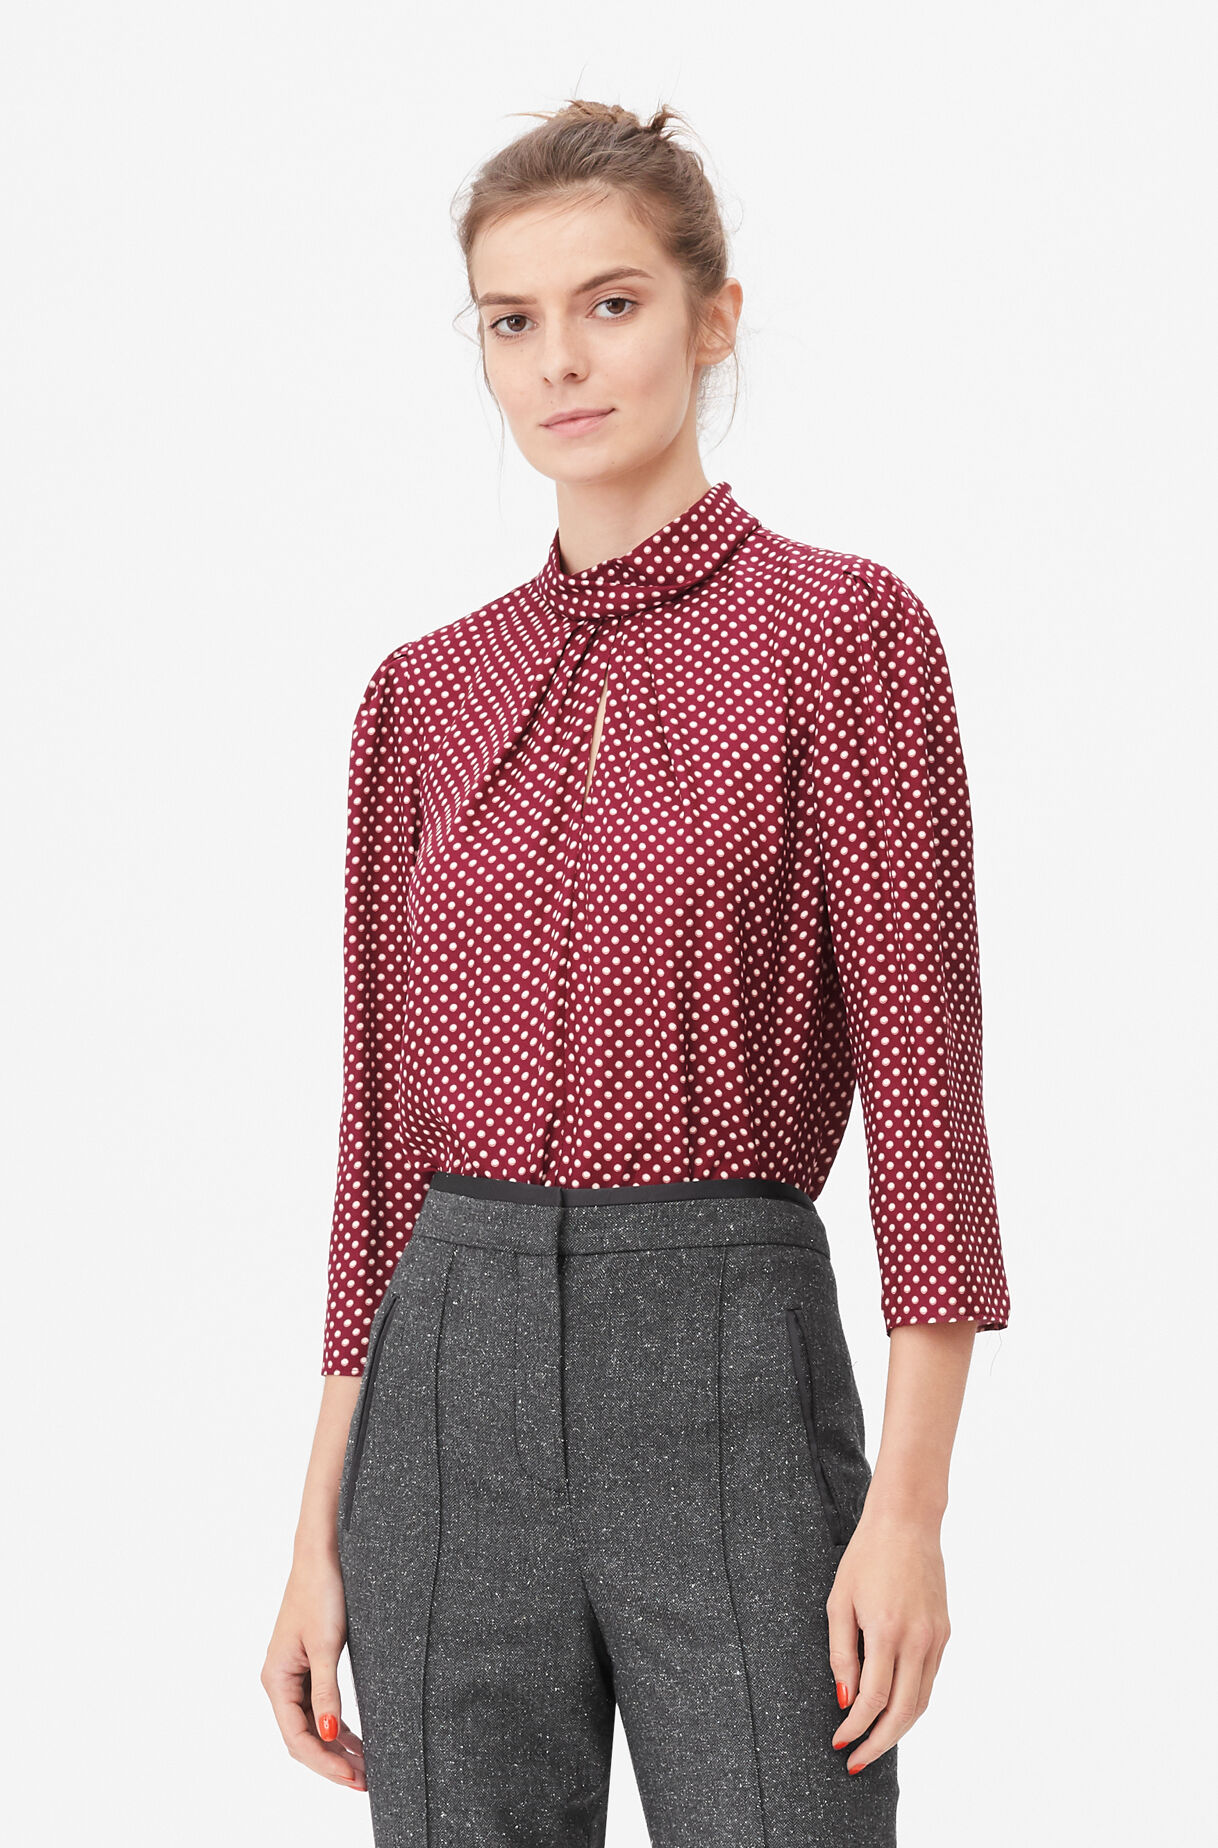 Tailored Deco Dot Twist Neck Top, , large